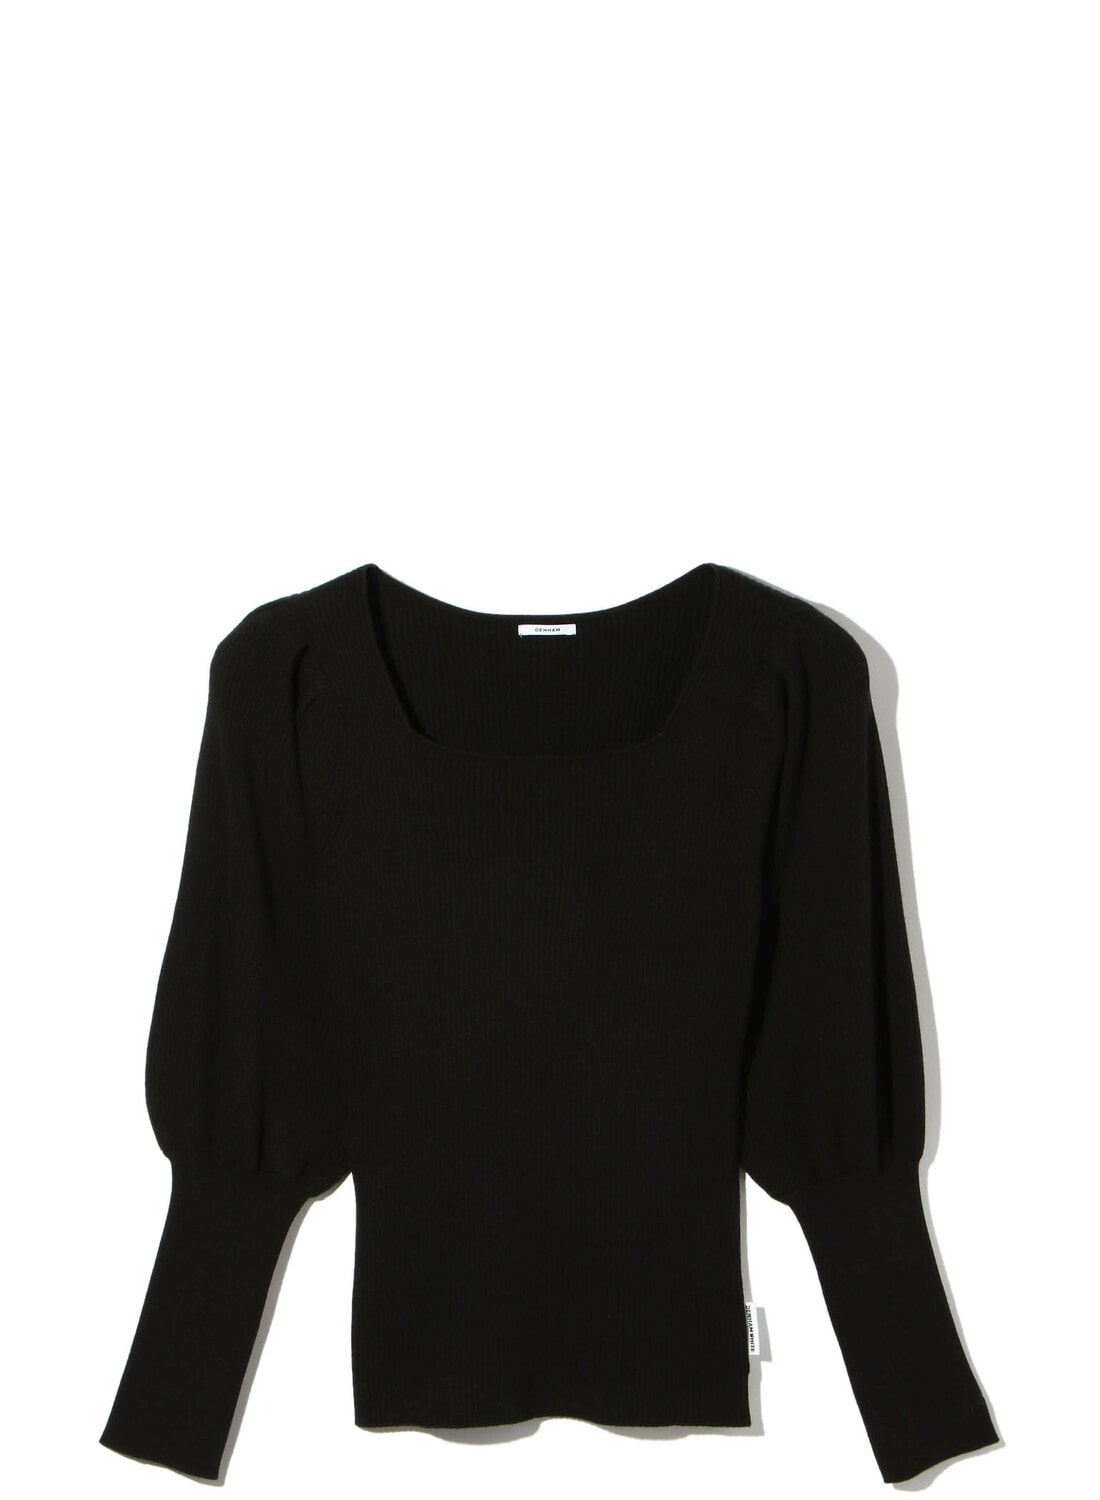 SQUARE NECK KNIT TOPS